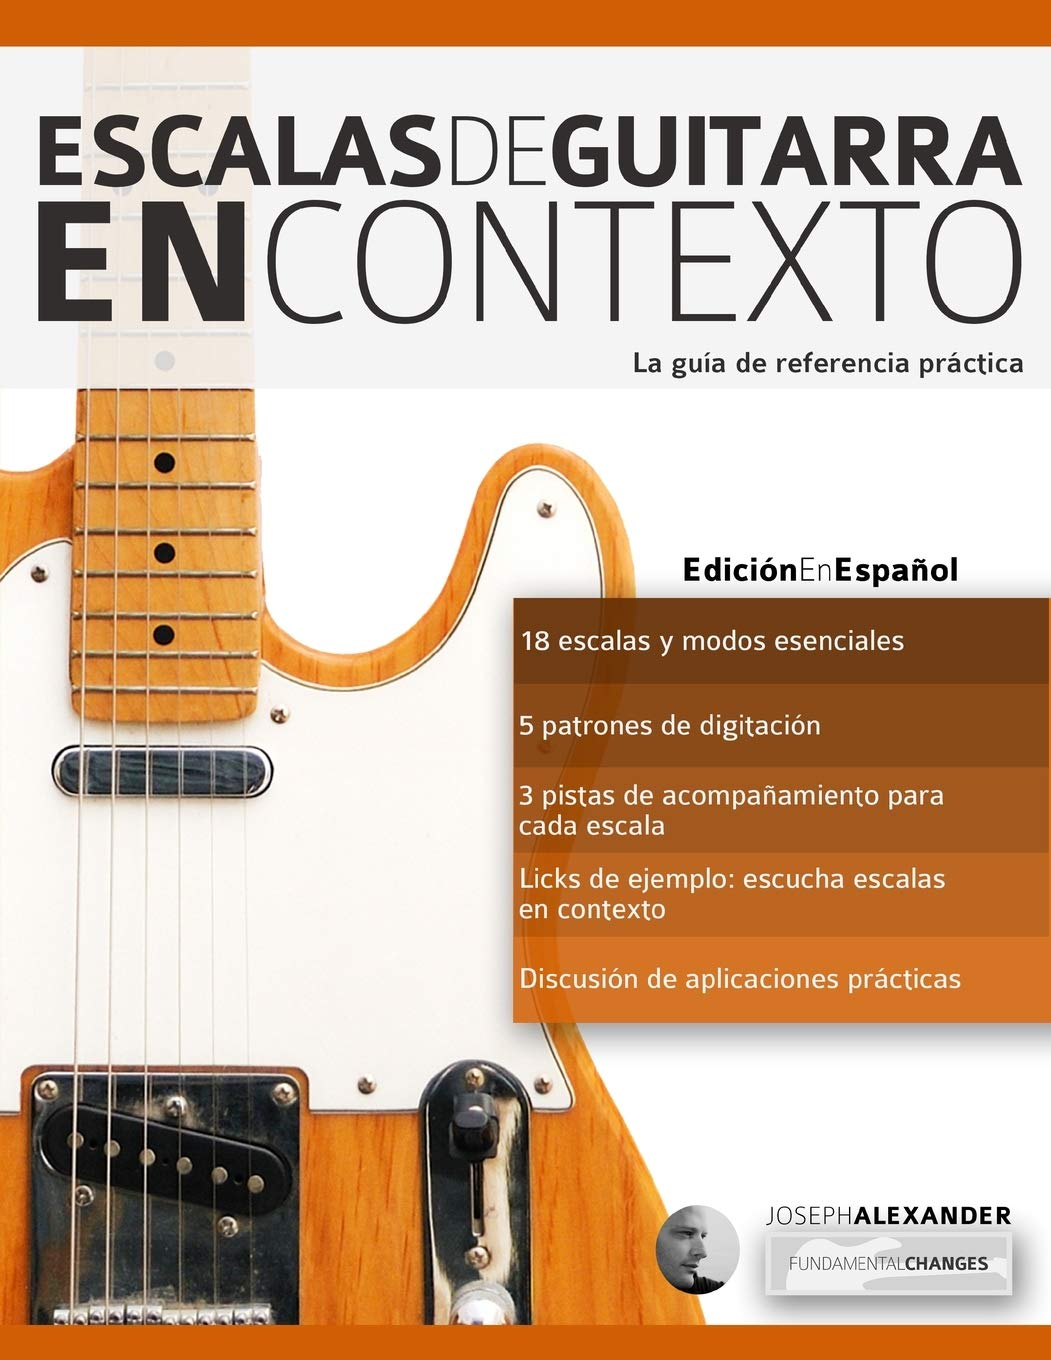 Escala pentatonica guitarra